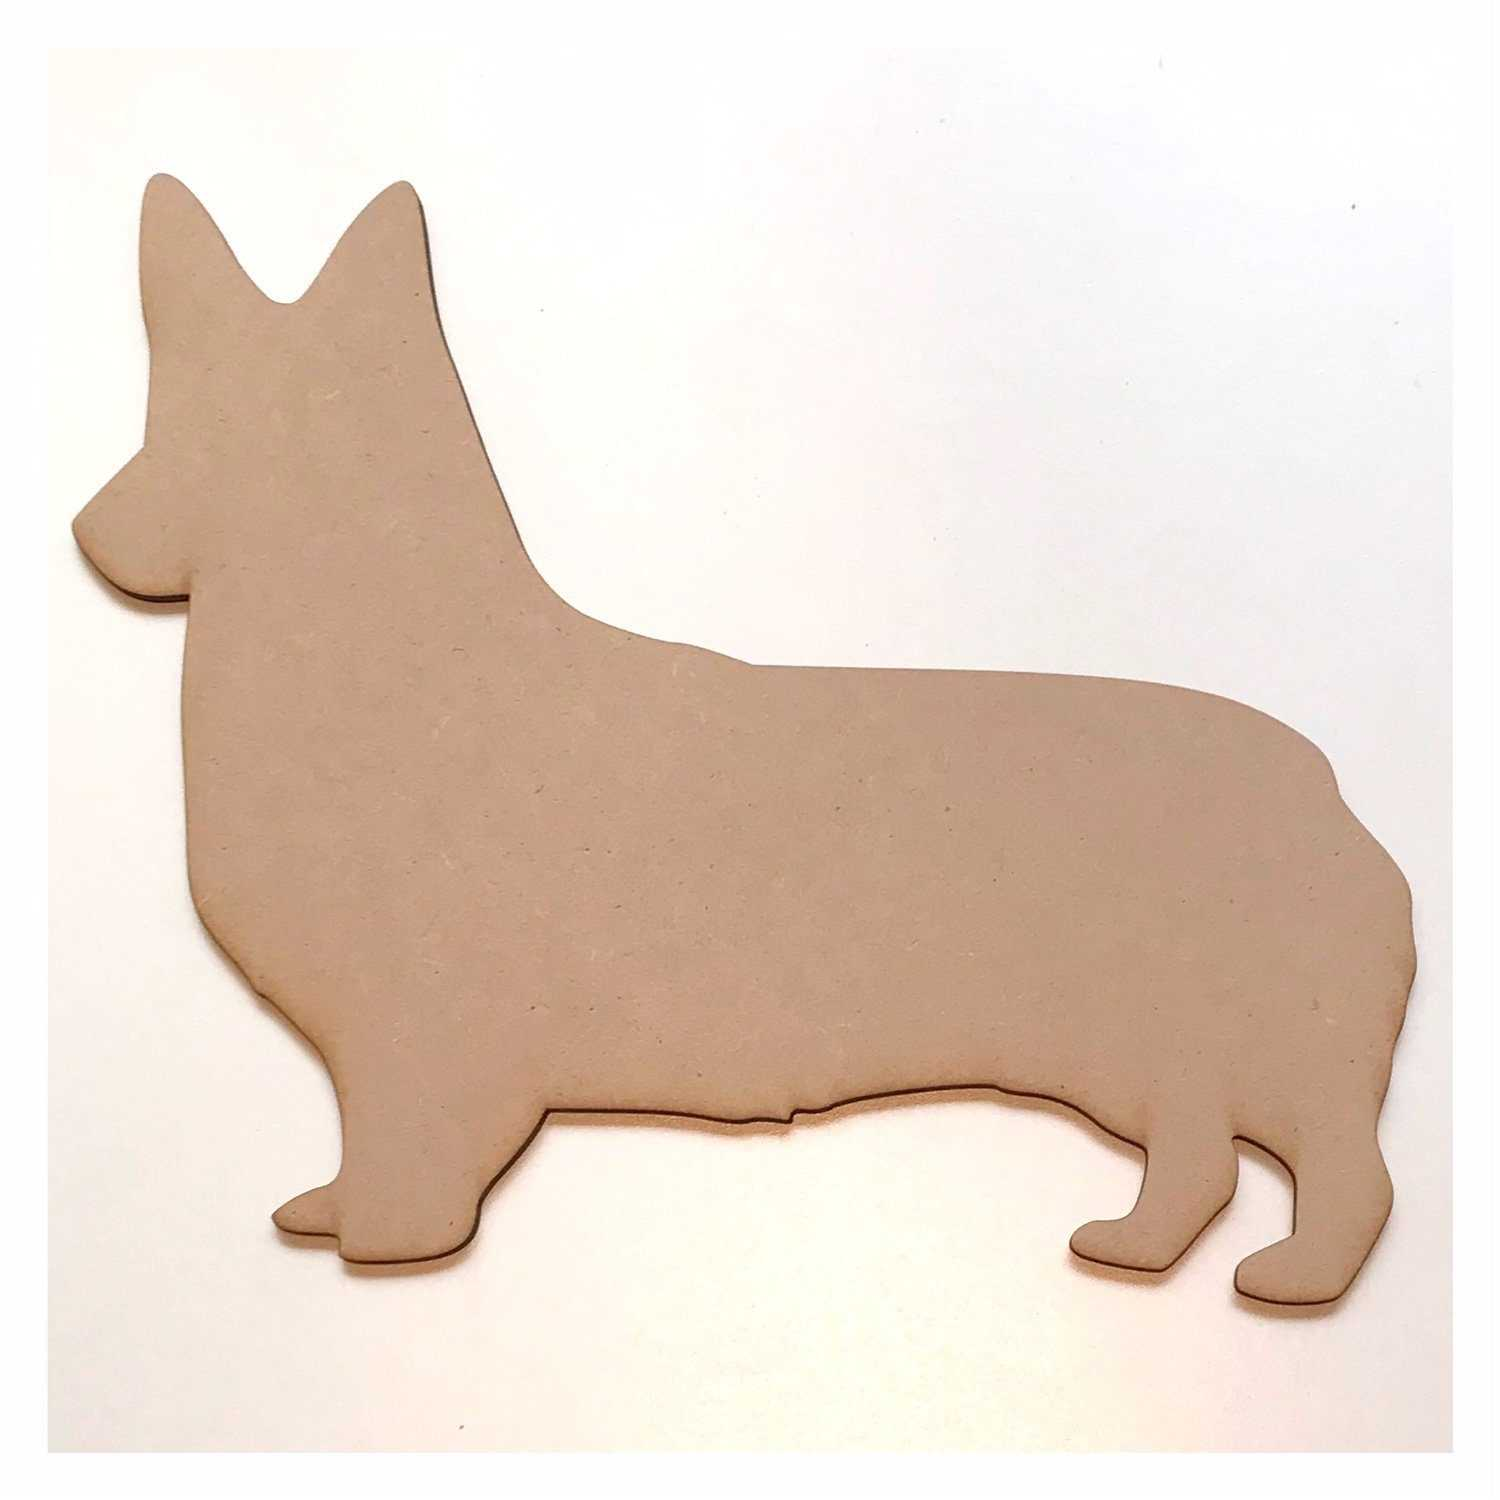 Corgi Pembroke Welsh Dog DIY Raw MDF Timber - The Renmy Store